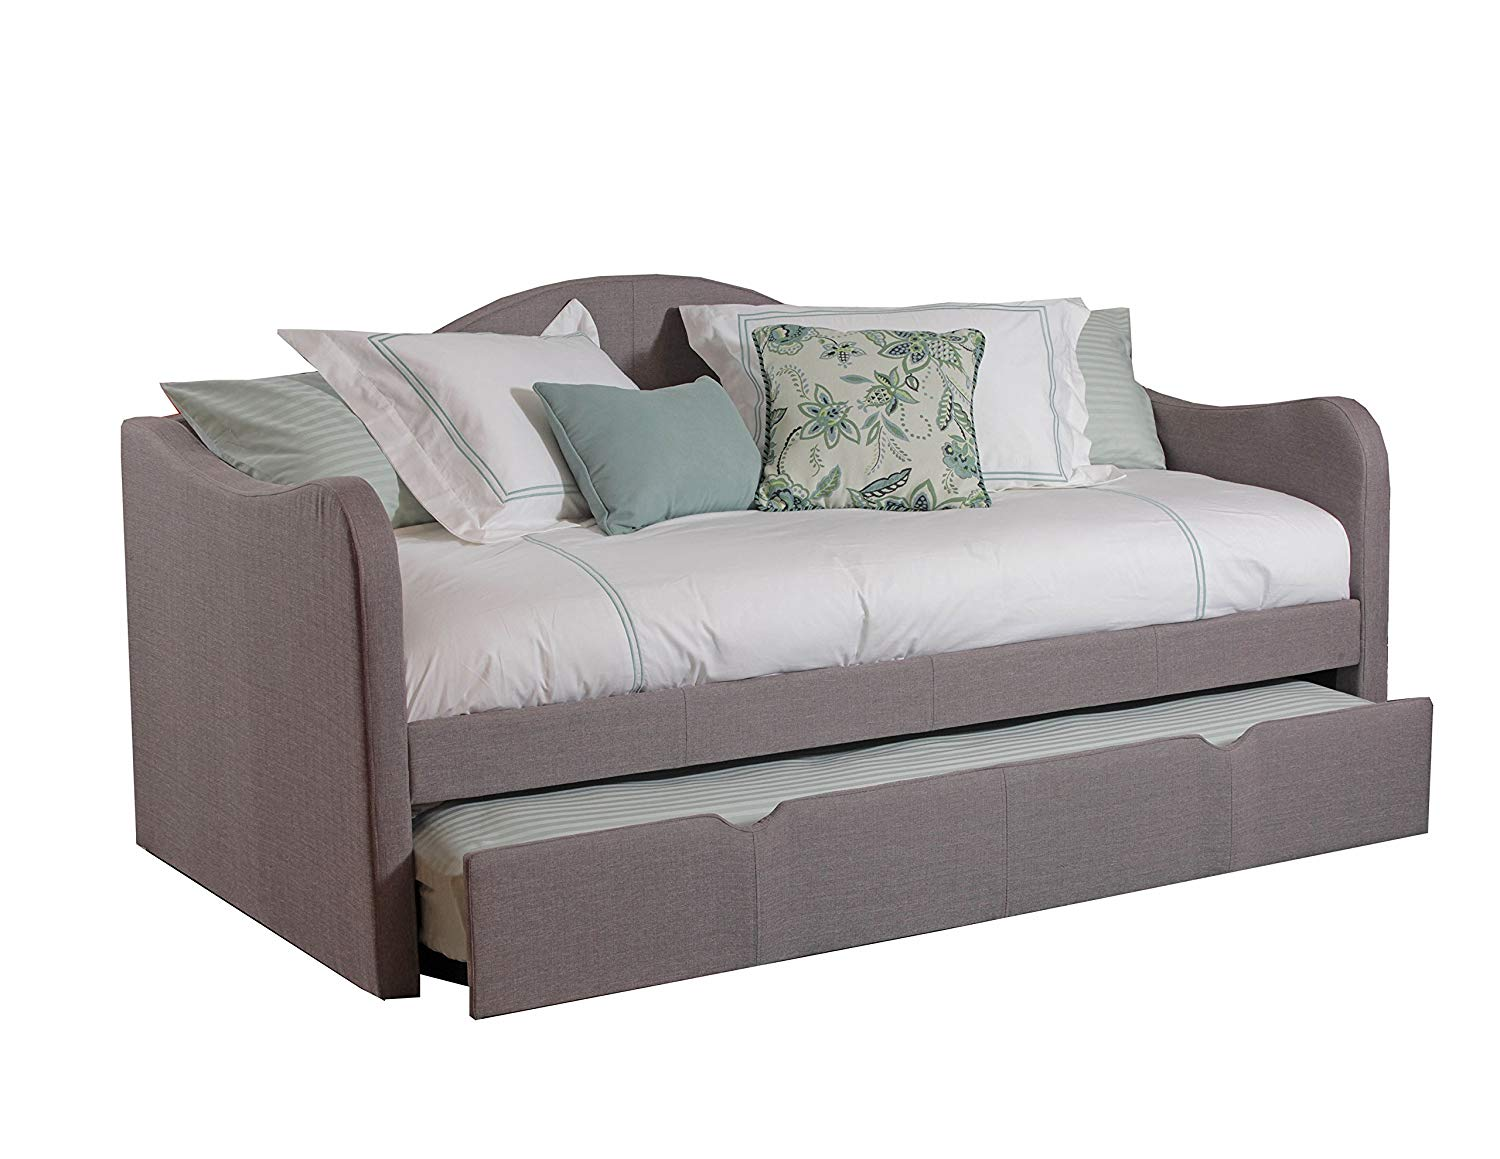 Upholstered Day Bed